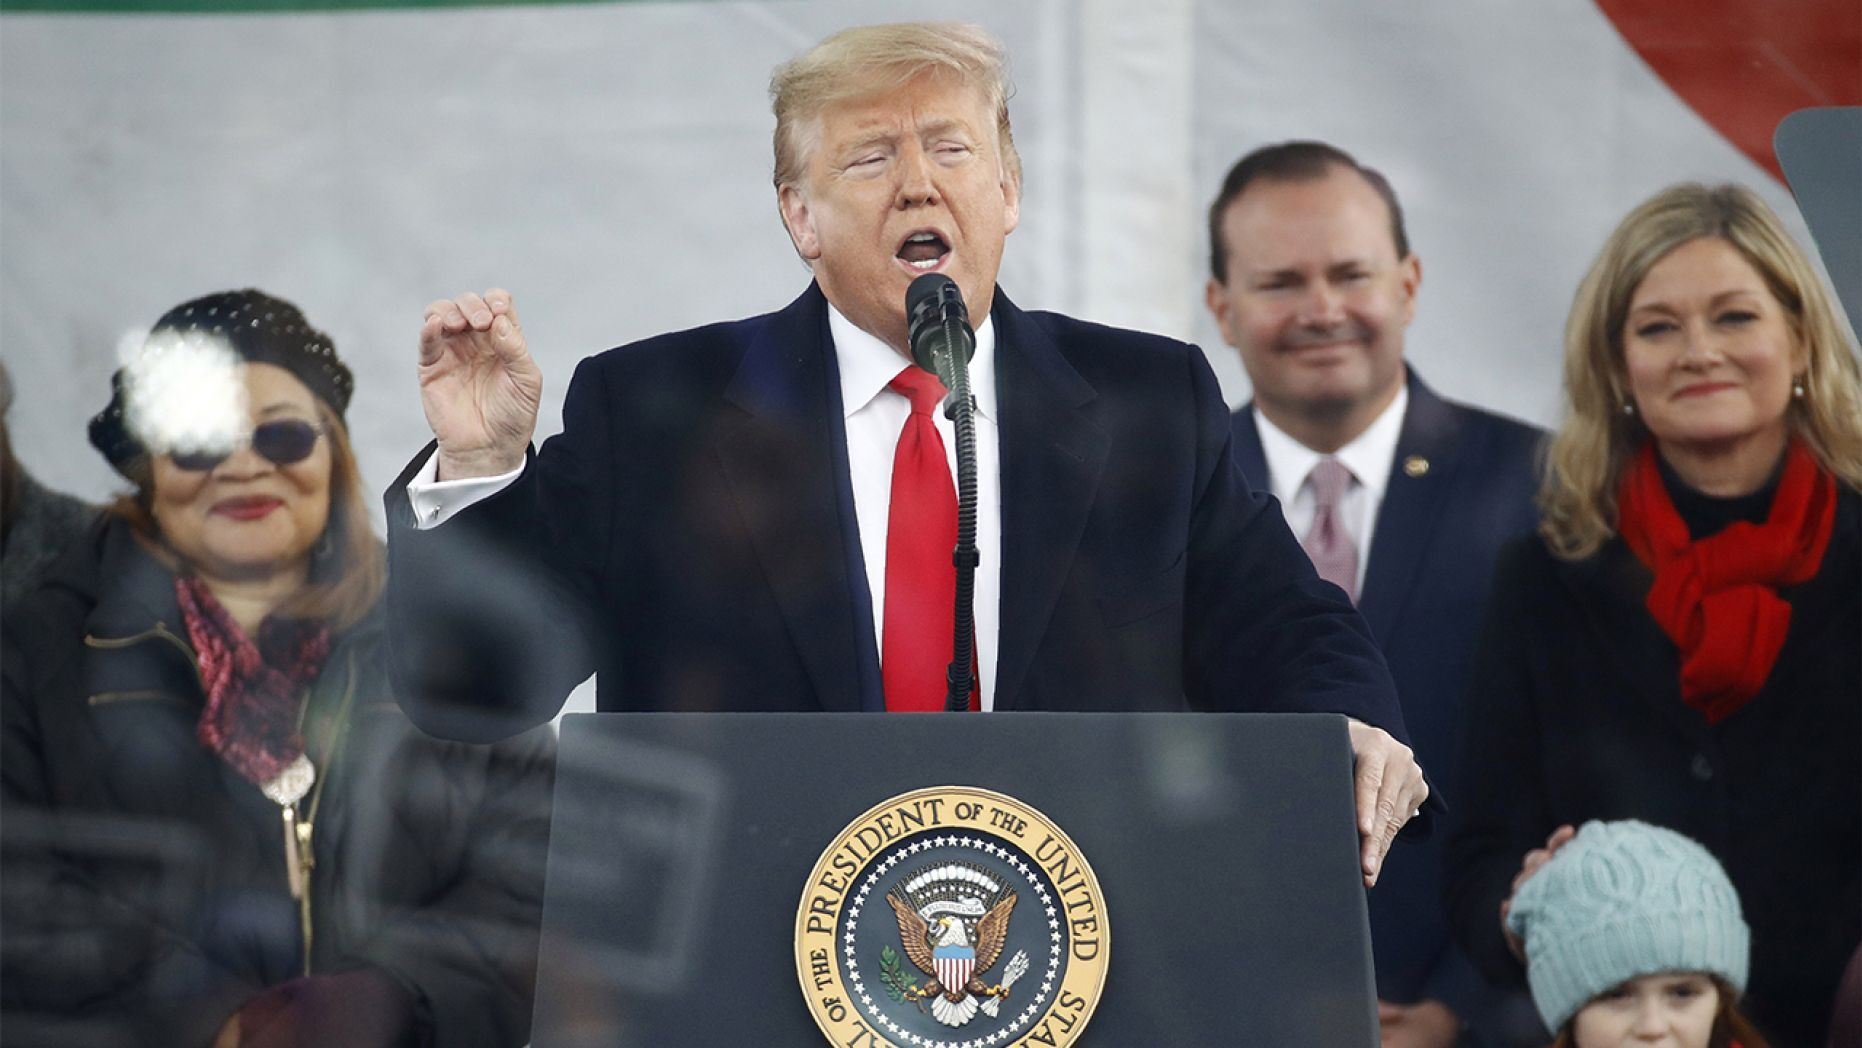 President Donald Trump Sues Pennsylvania: Claims Mail-In Voting Is Unconstitutional, Welcomed Fraud